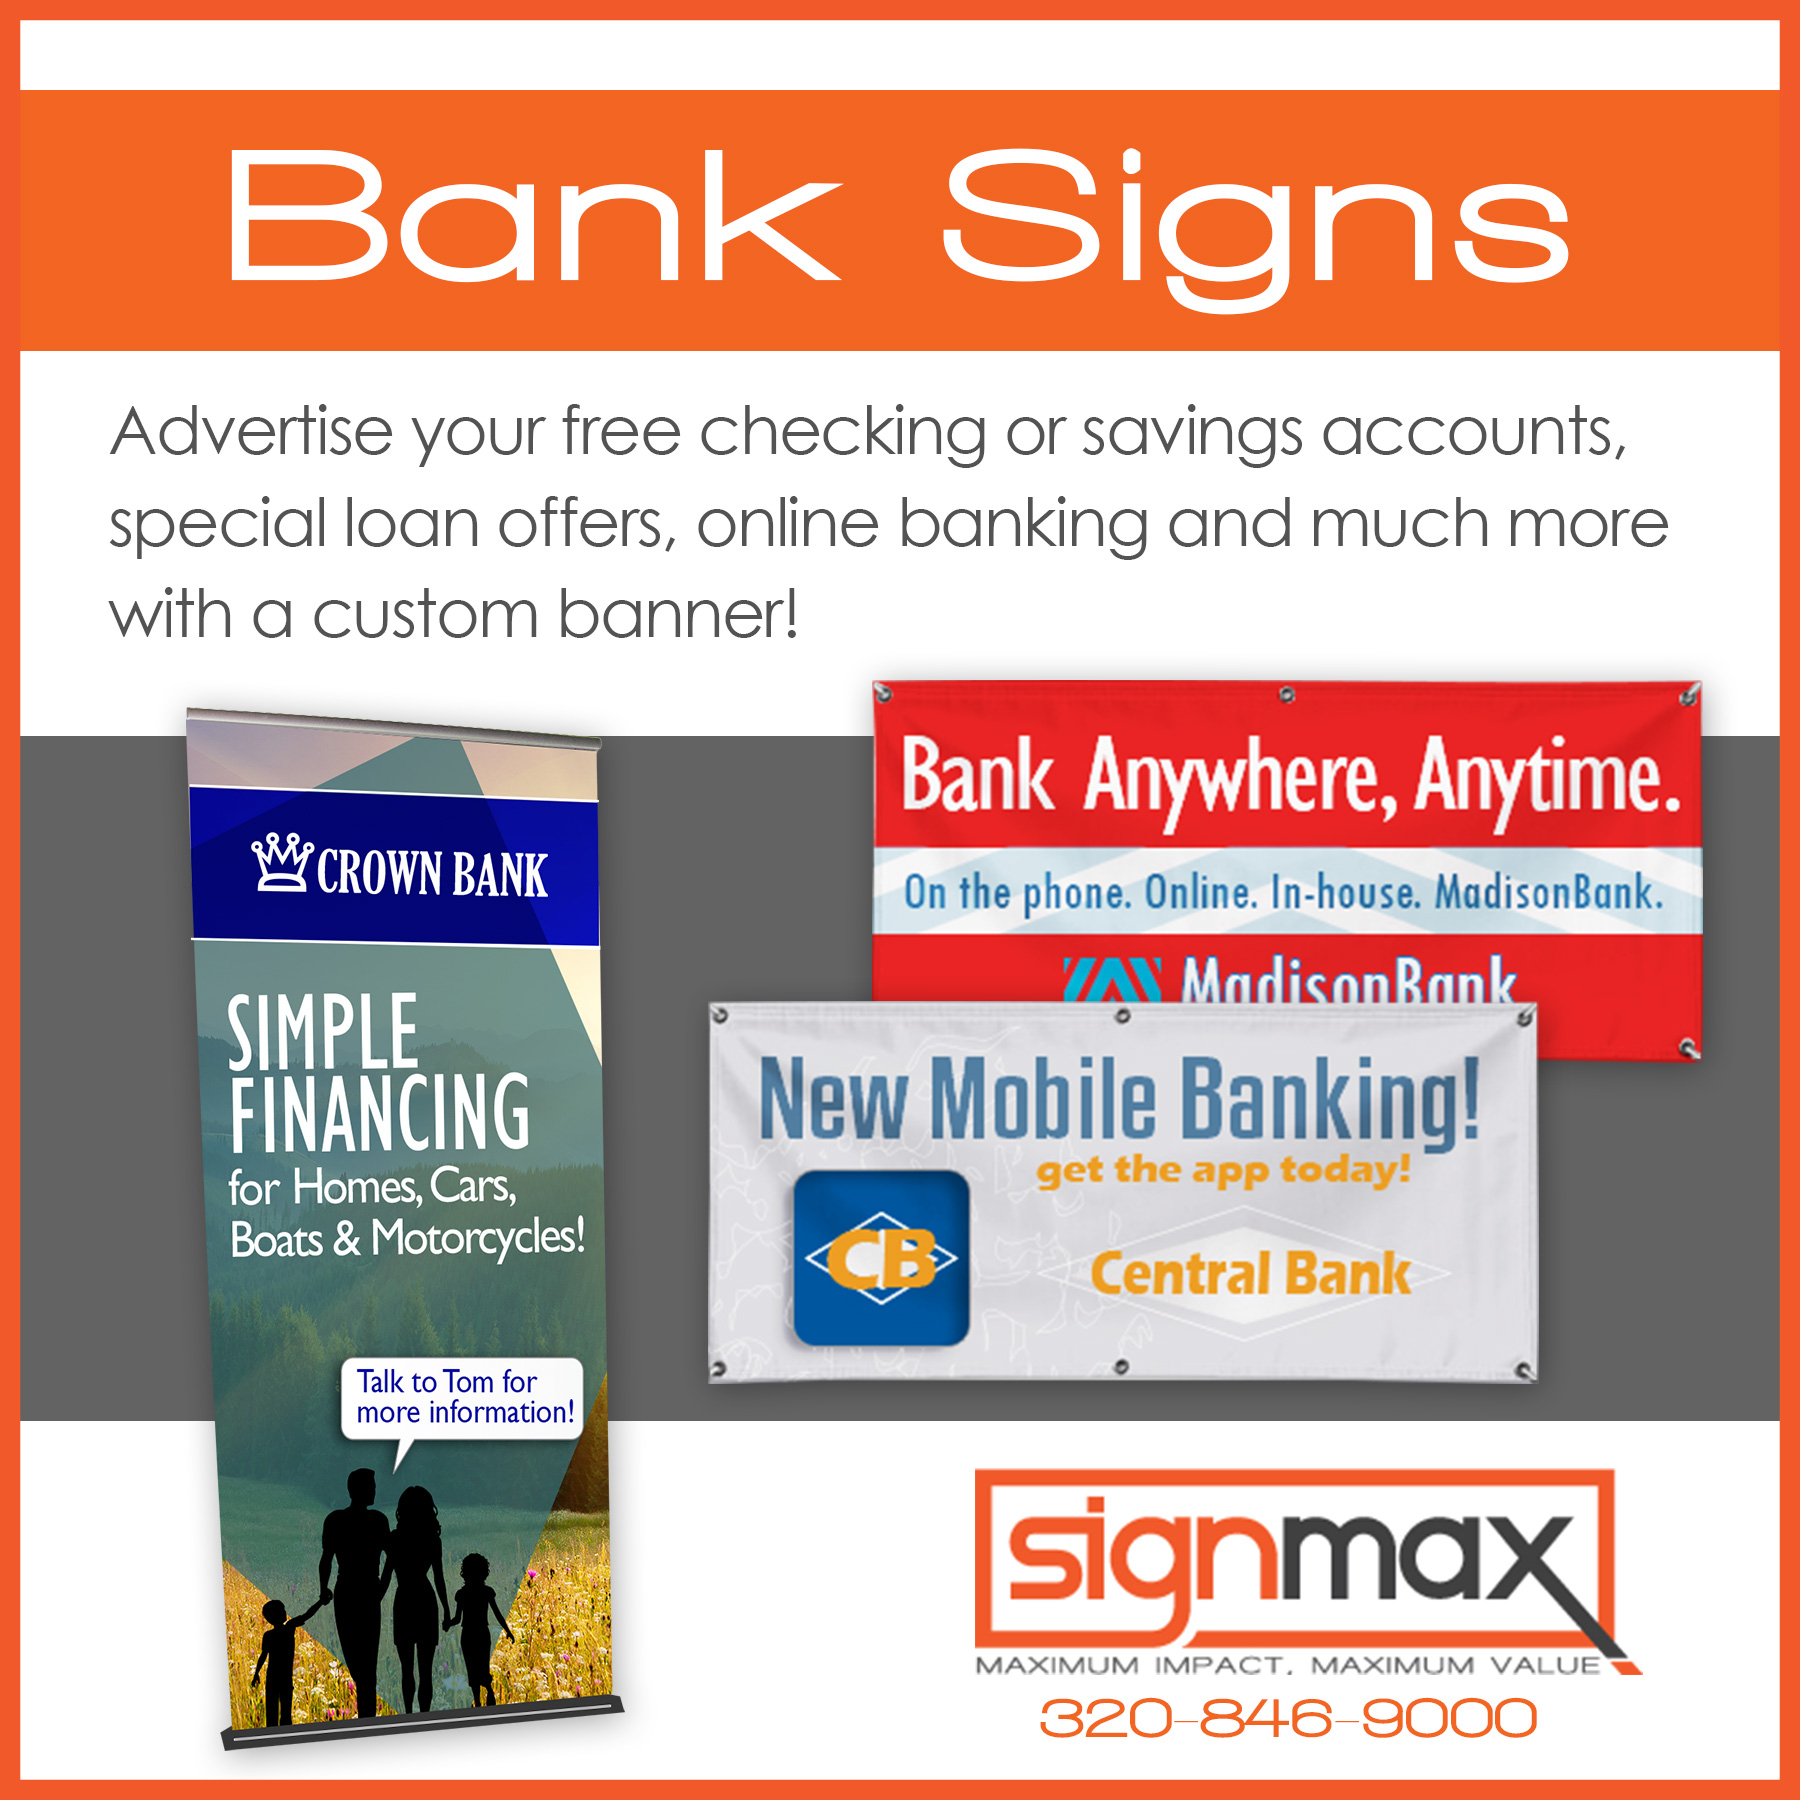 Bank Signage Options - Banners and Retractors | Signmax.com